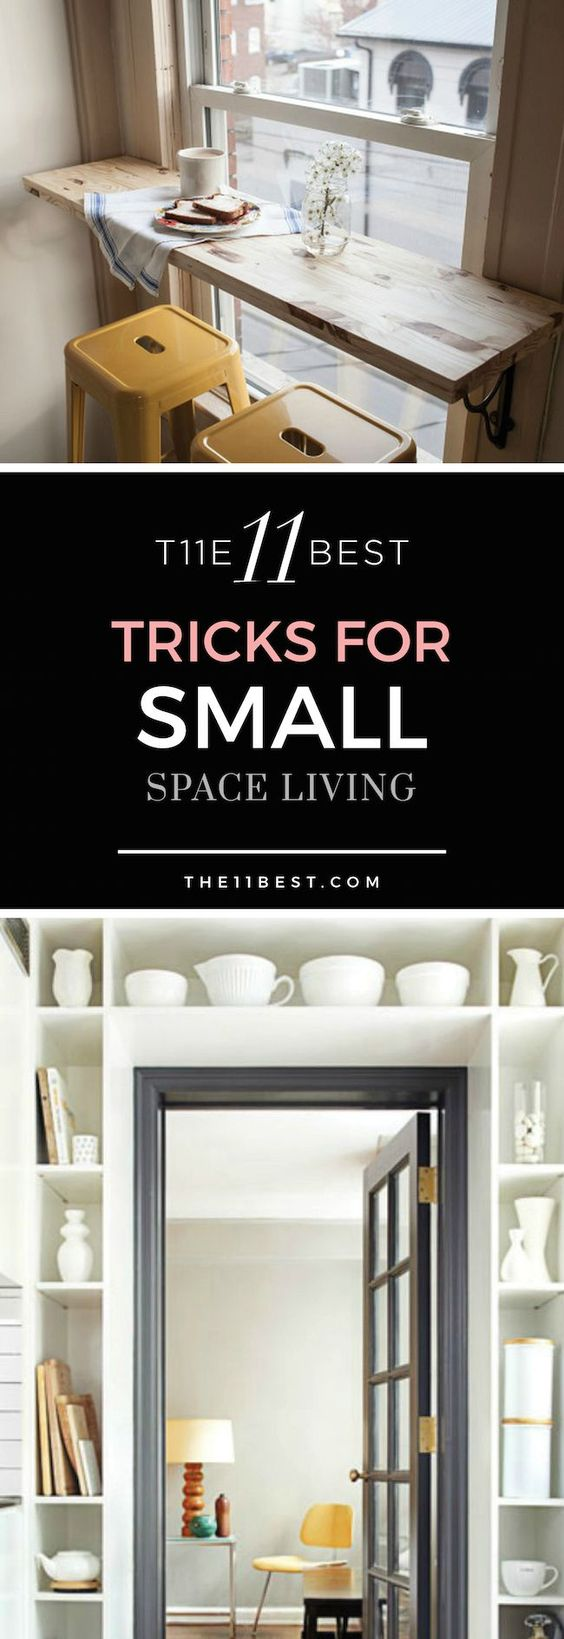 Amazing ideas!! Tips and tricks for small spaces in your home. Breakfast bar!